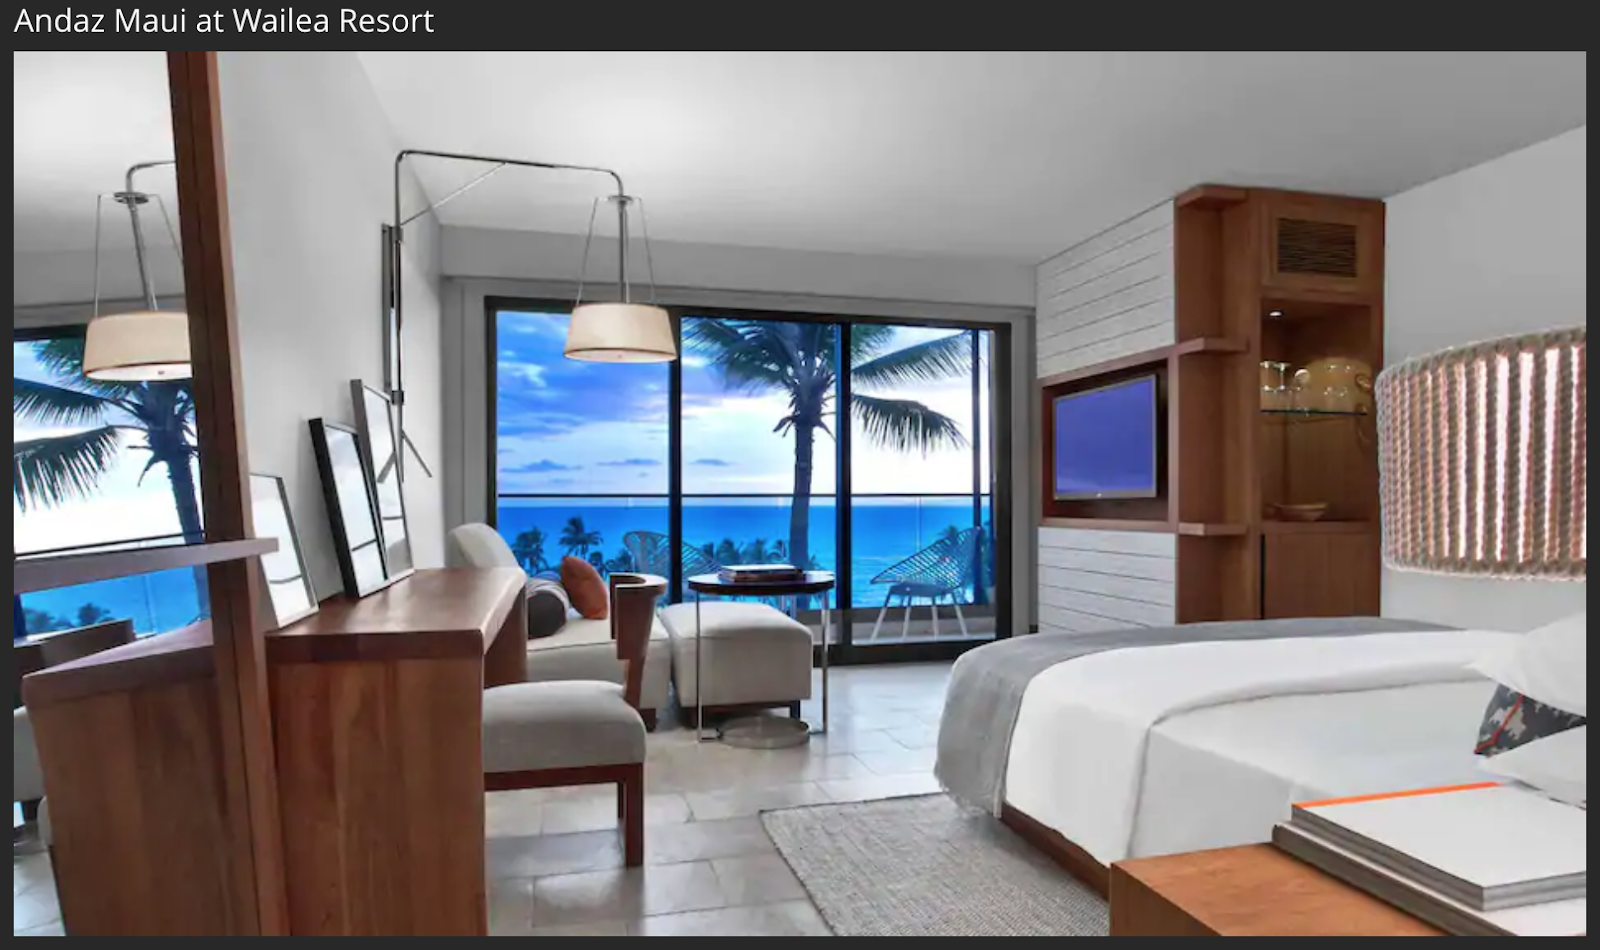 Andaz Maui at Wailea Resorts room with a beach view